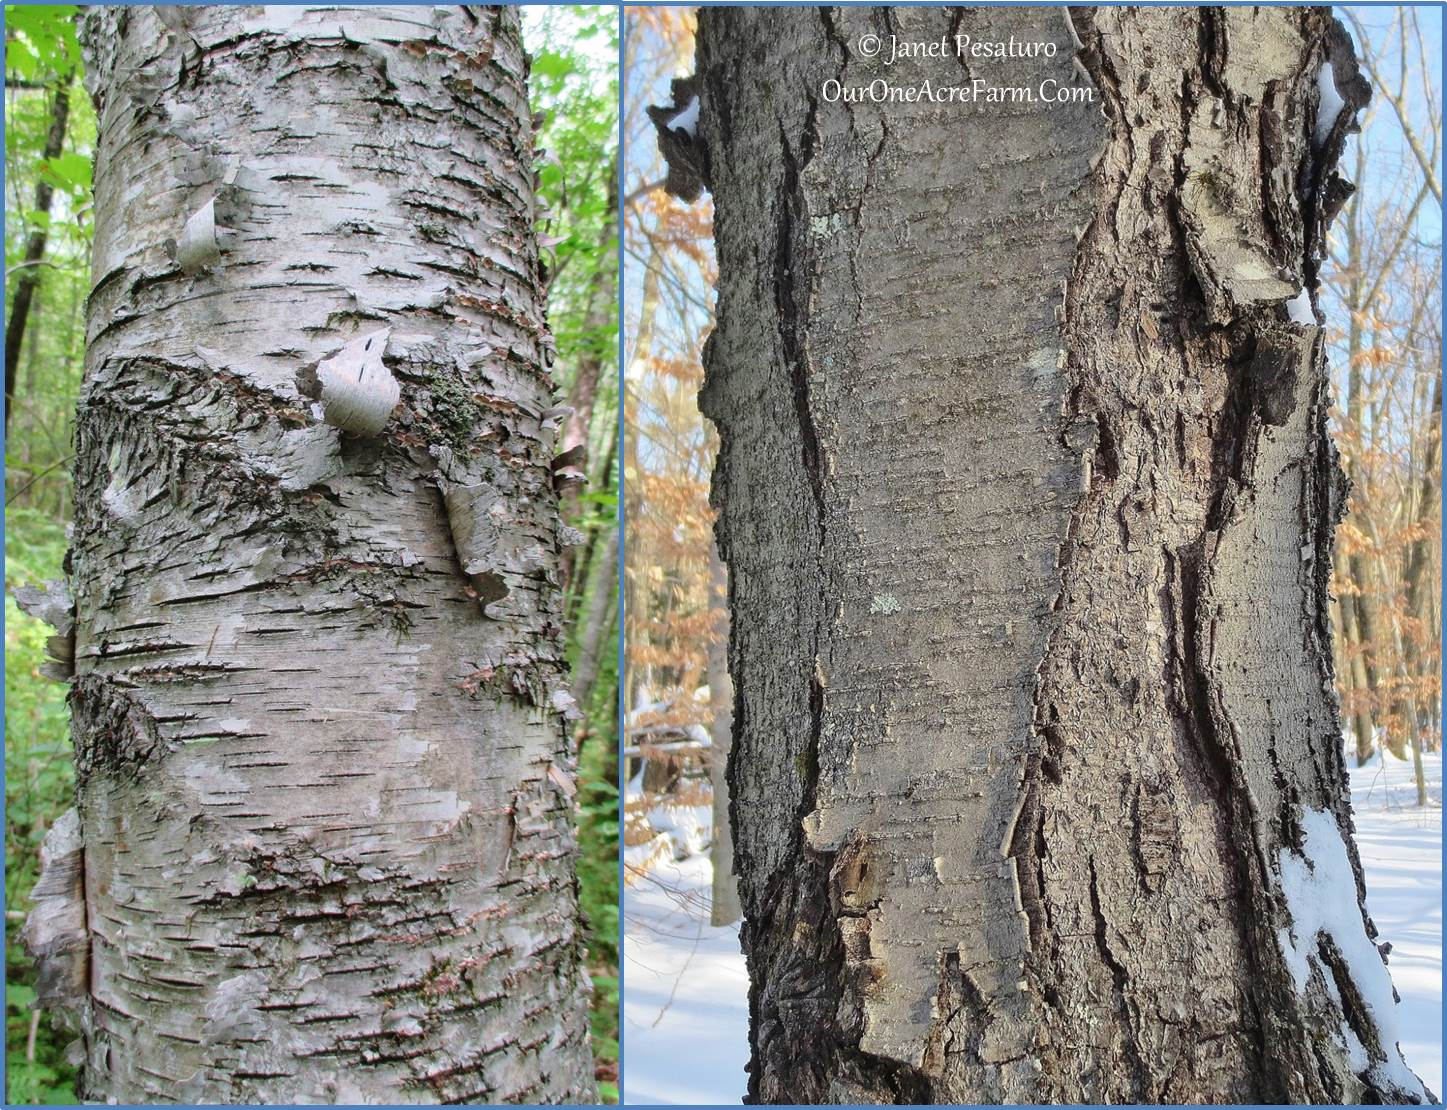 Landscaping With Paper Birch Trees : Trees for a wildlife friendly edible landsape